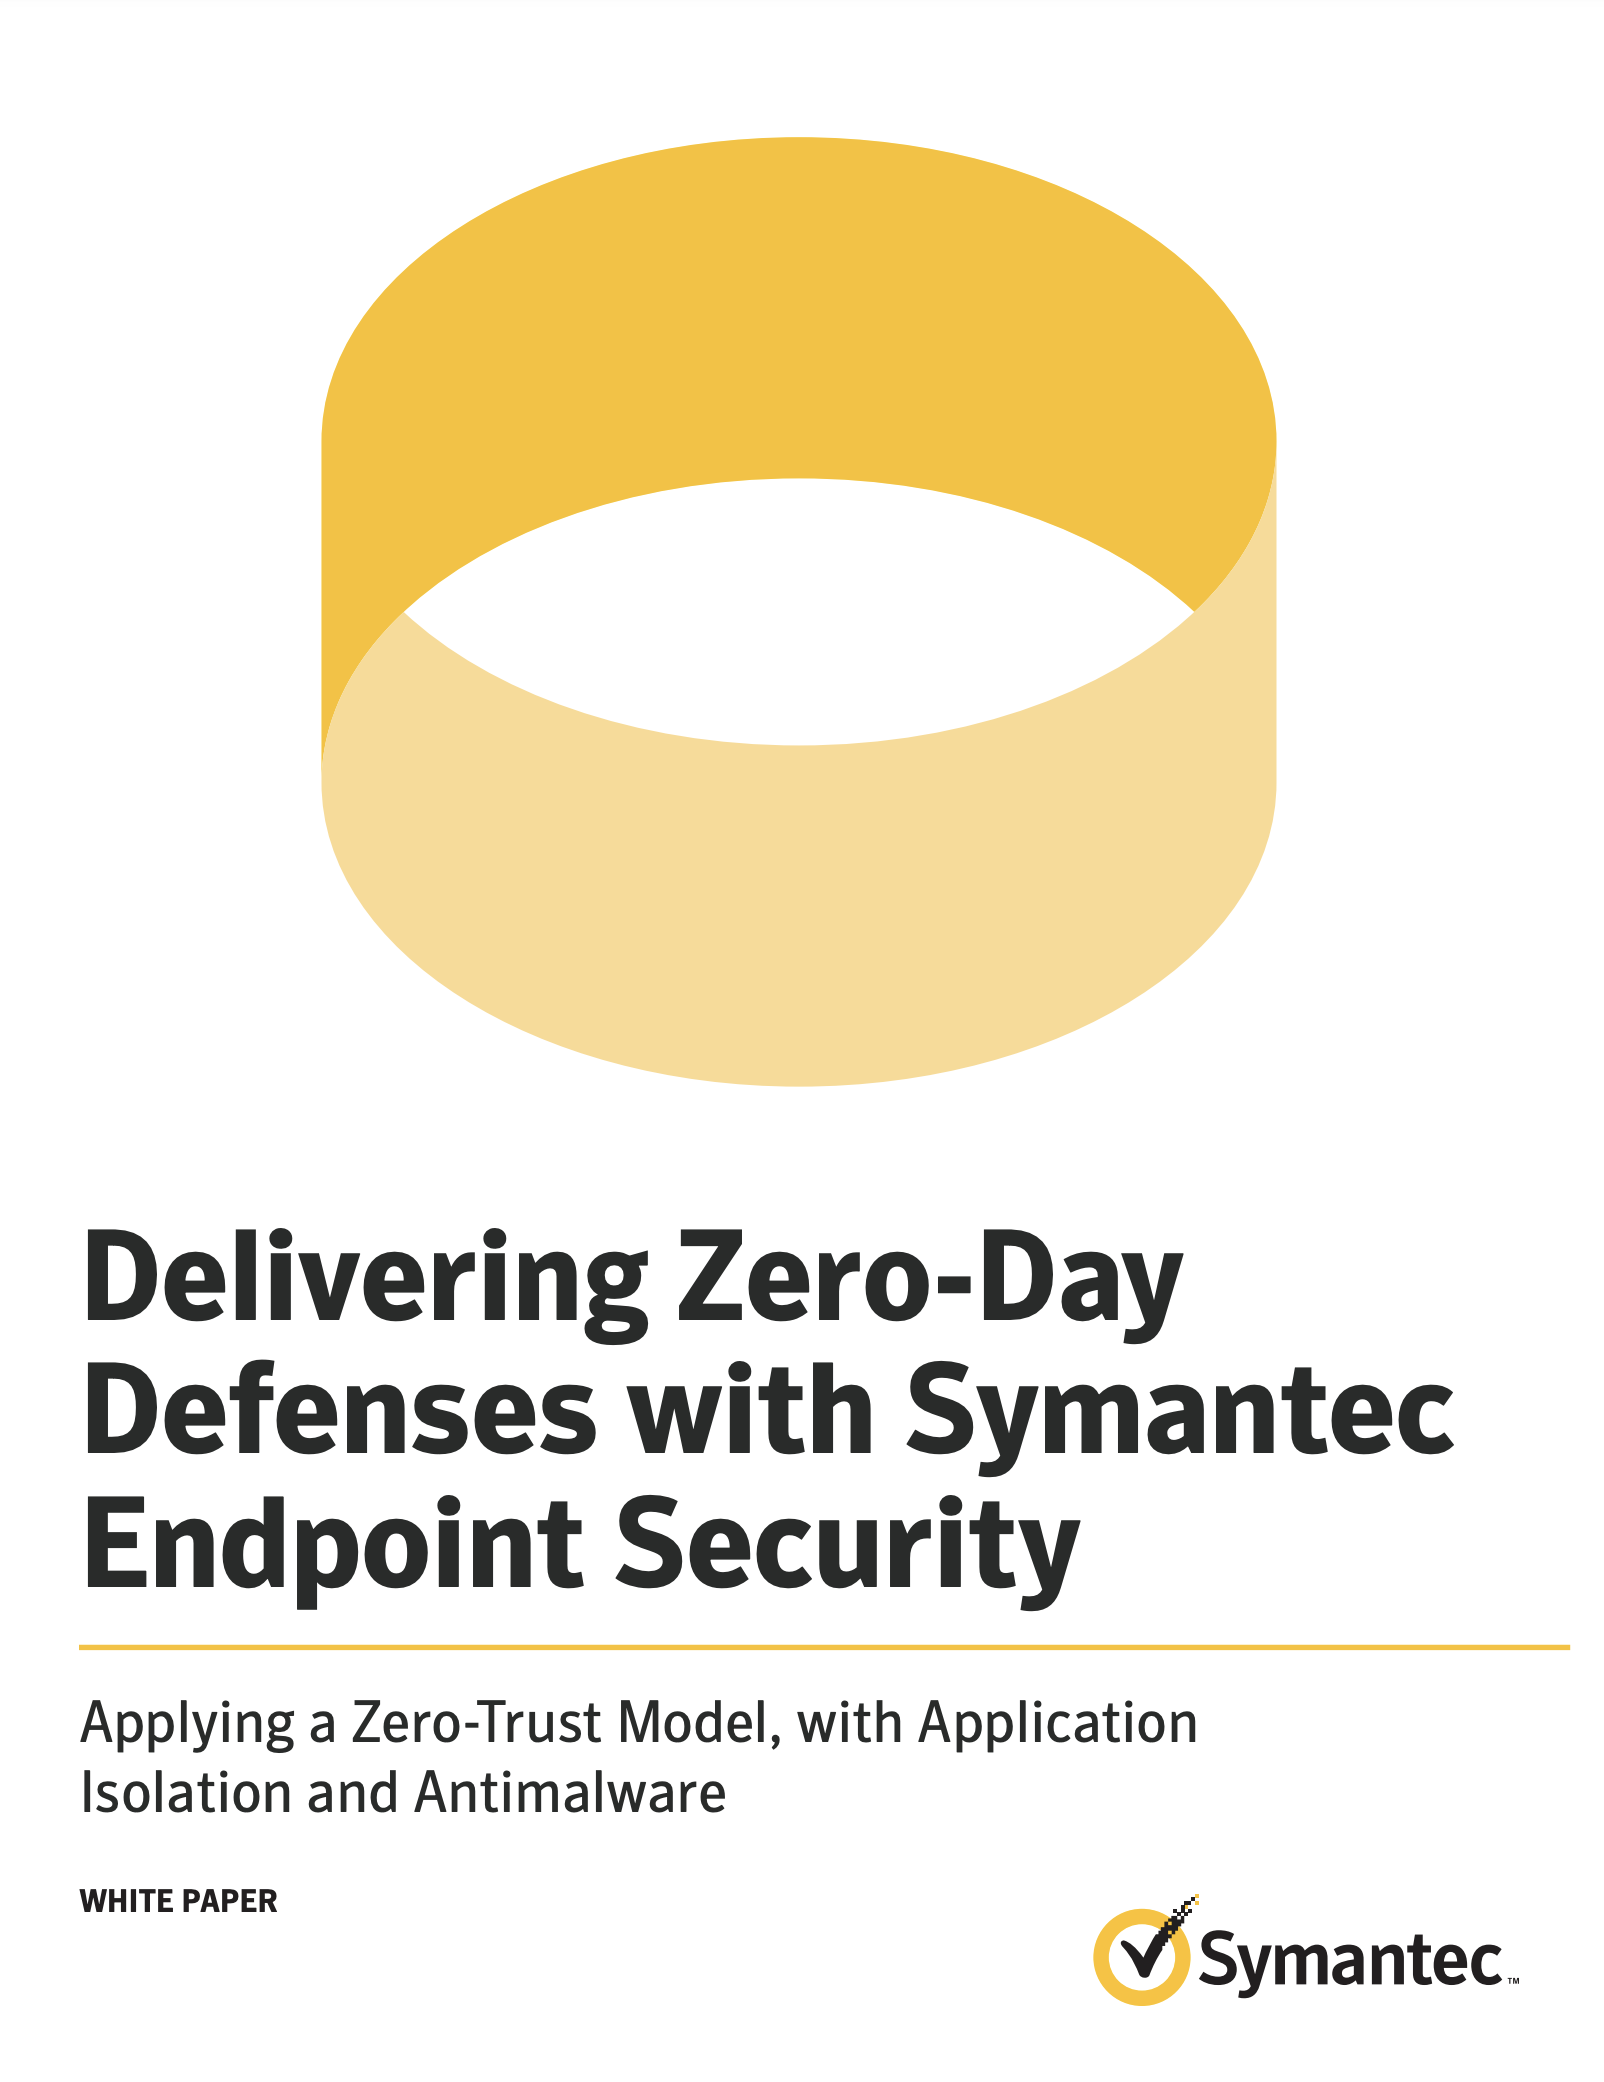 SYMANTEC ENDPOINT SECURITY WHITEPAPER